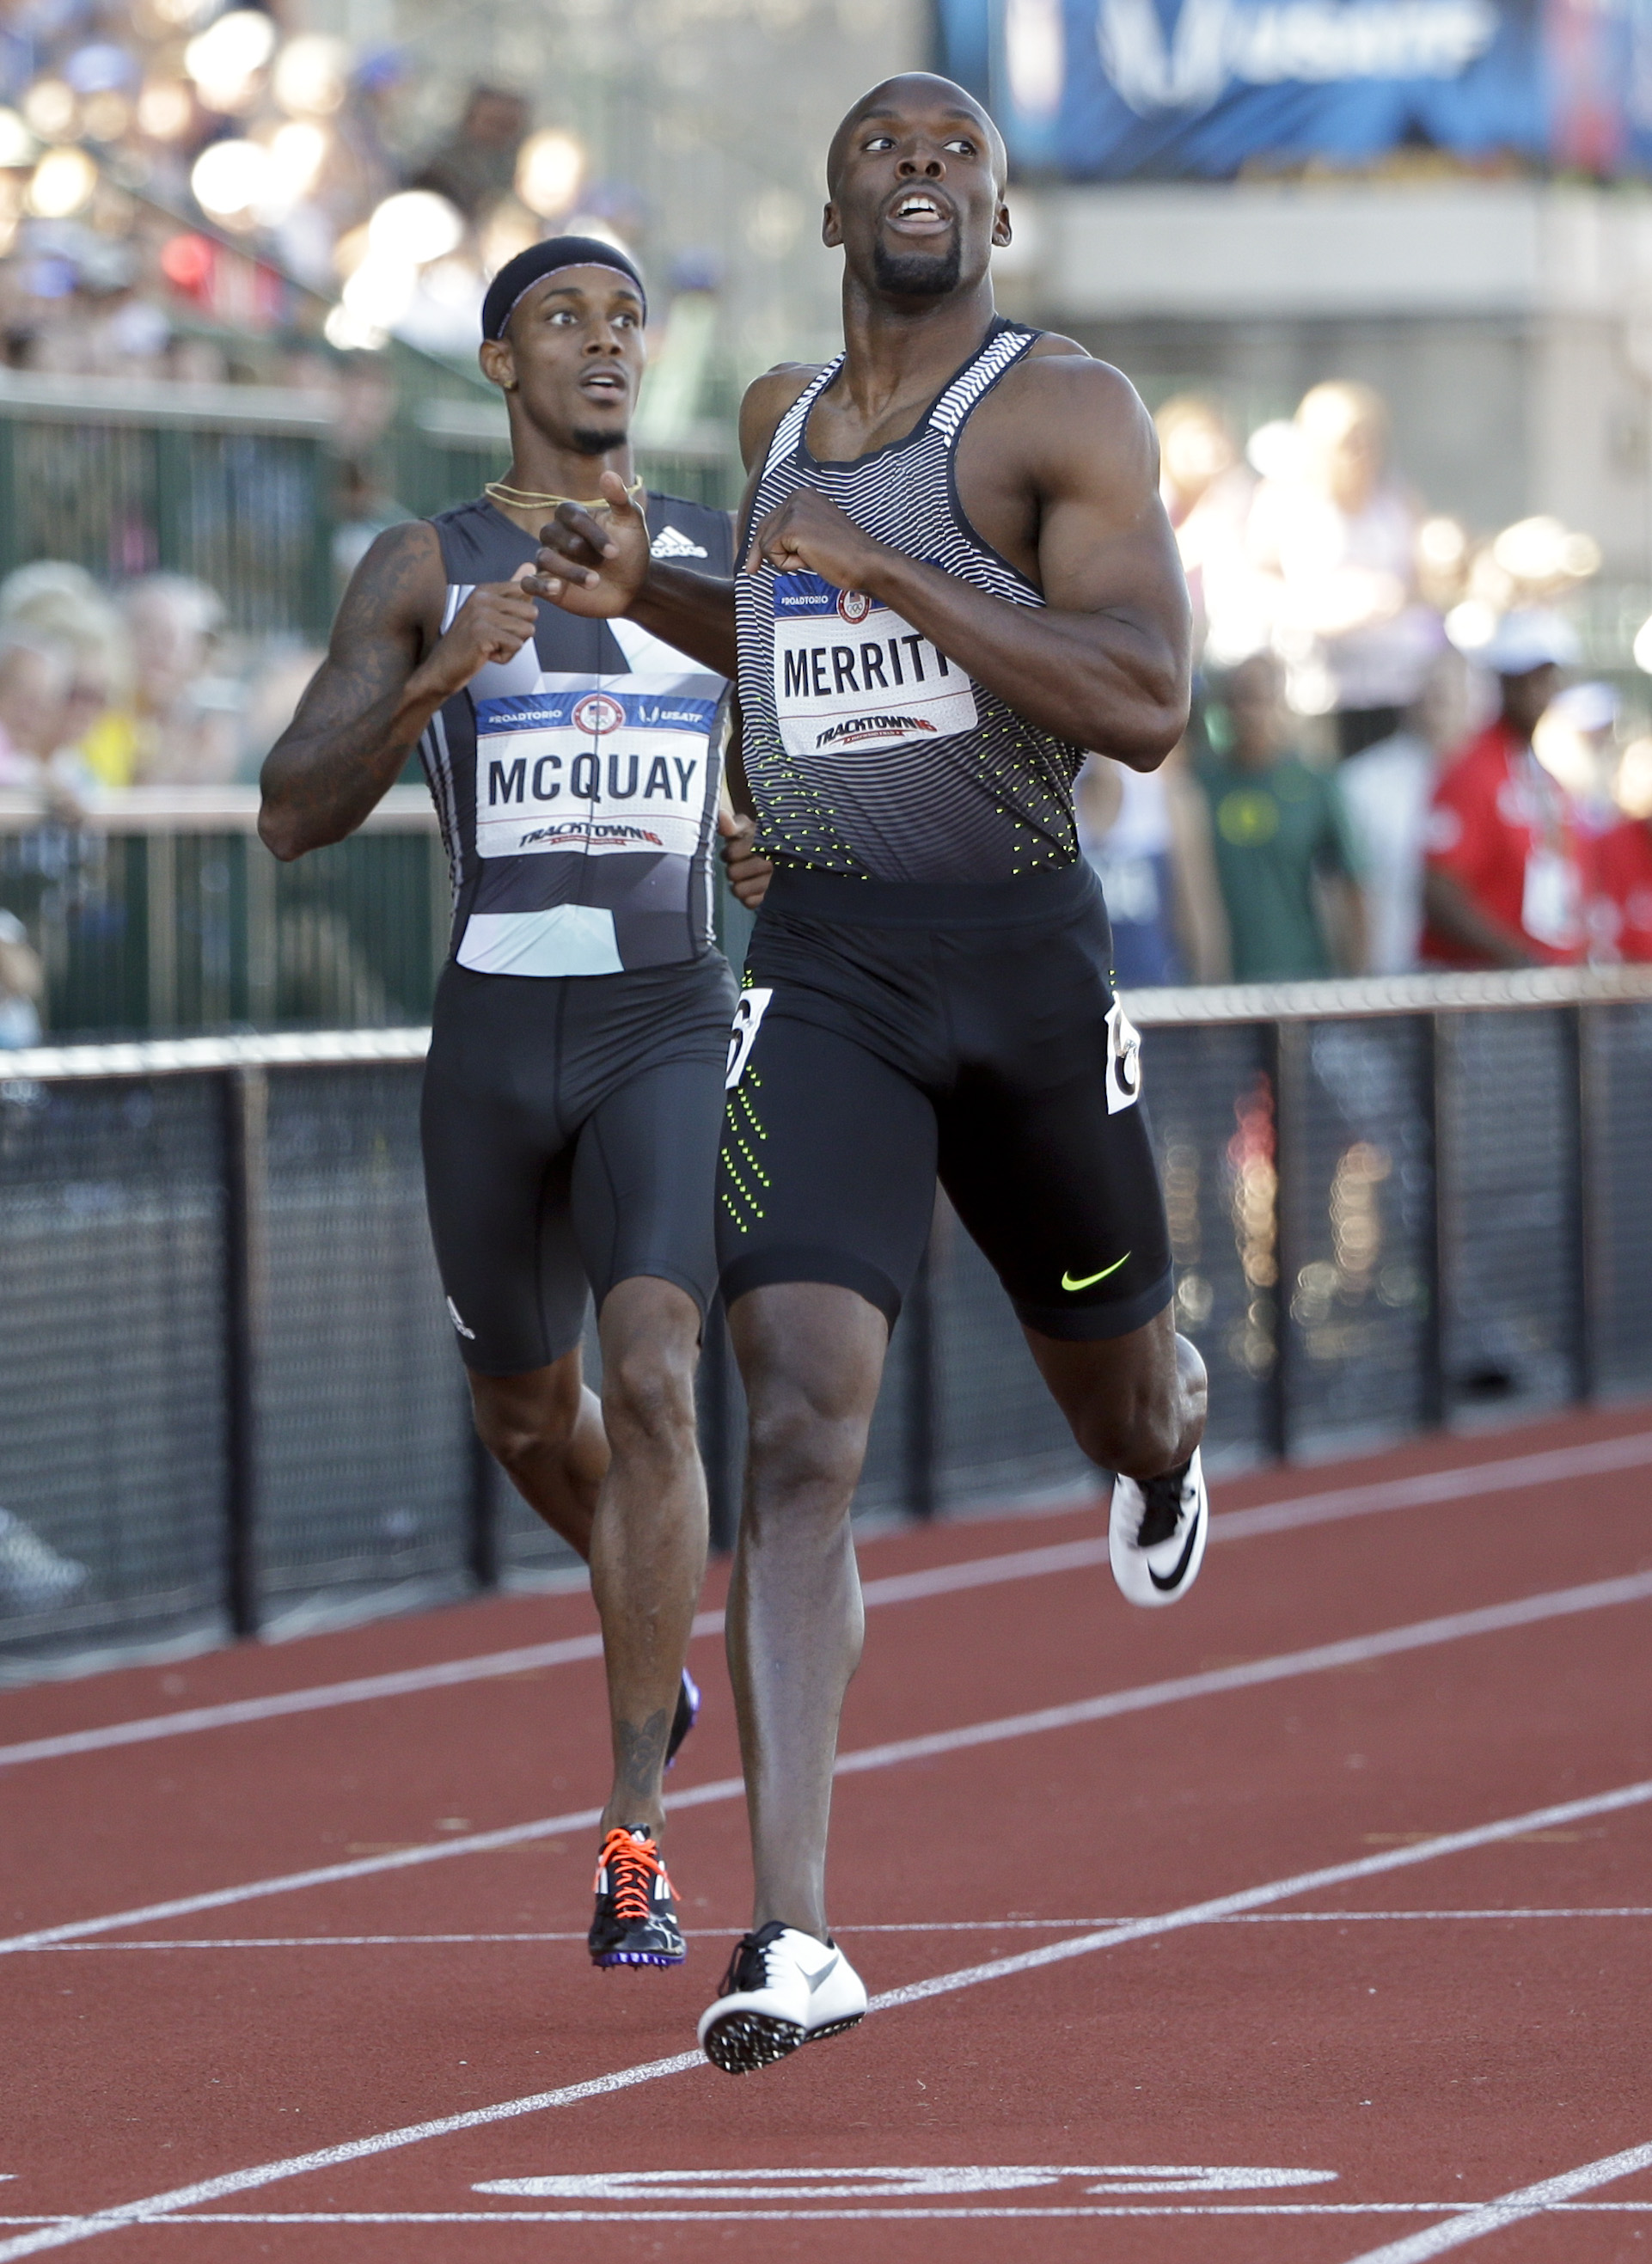 LaShawn Merritt, right, wins his heat during qualifying for men's 400-meter run at the U.S. Olympic Track and Field Trials, Friday, July 1, 2016, in Eugene Ore. (AP Photo/Marcio Jose Sanchez)